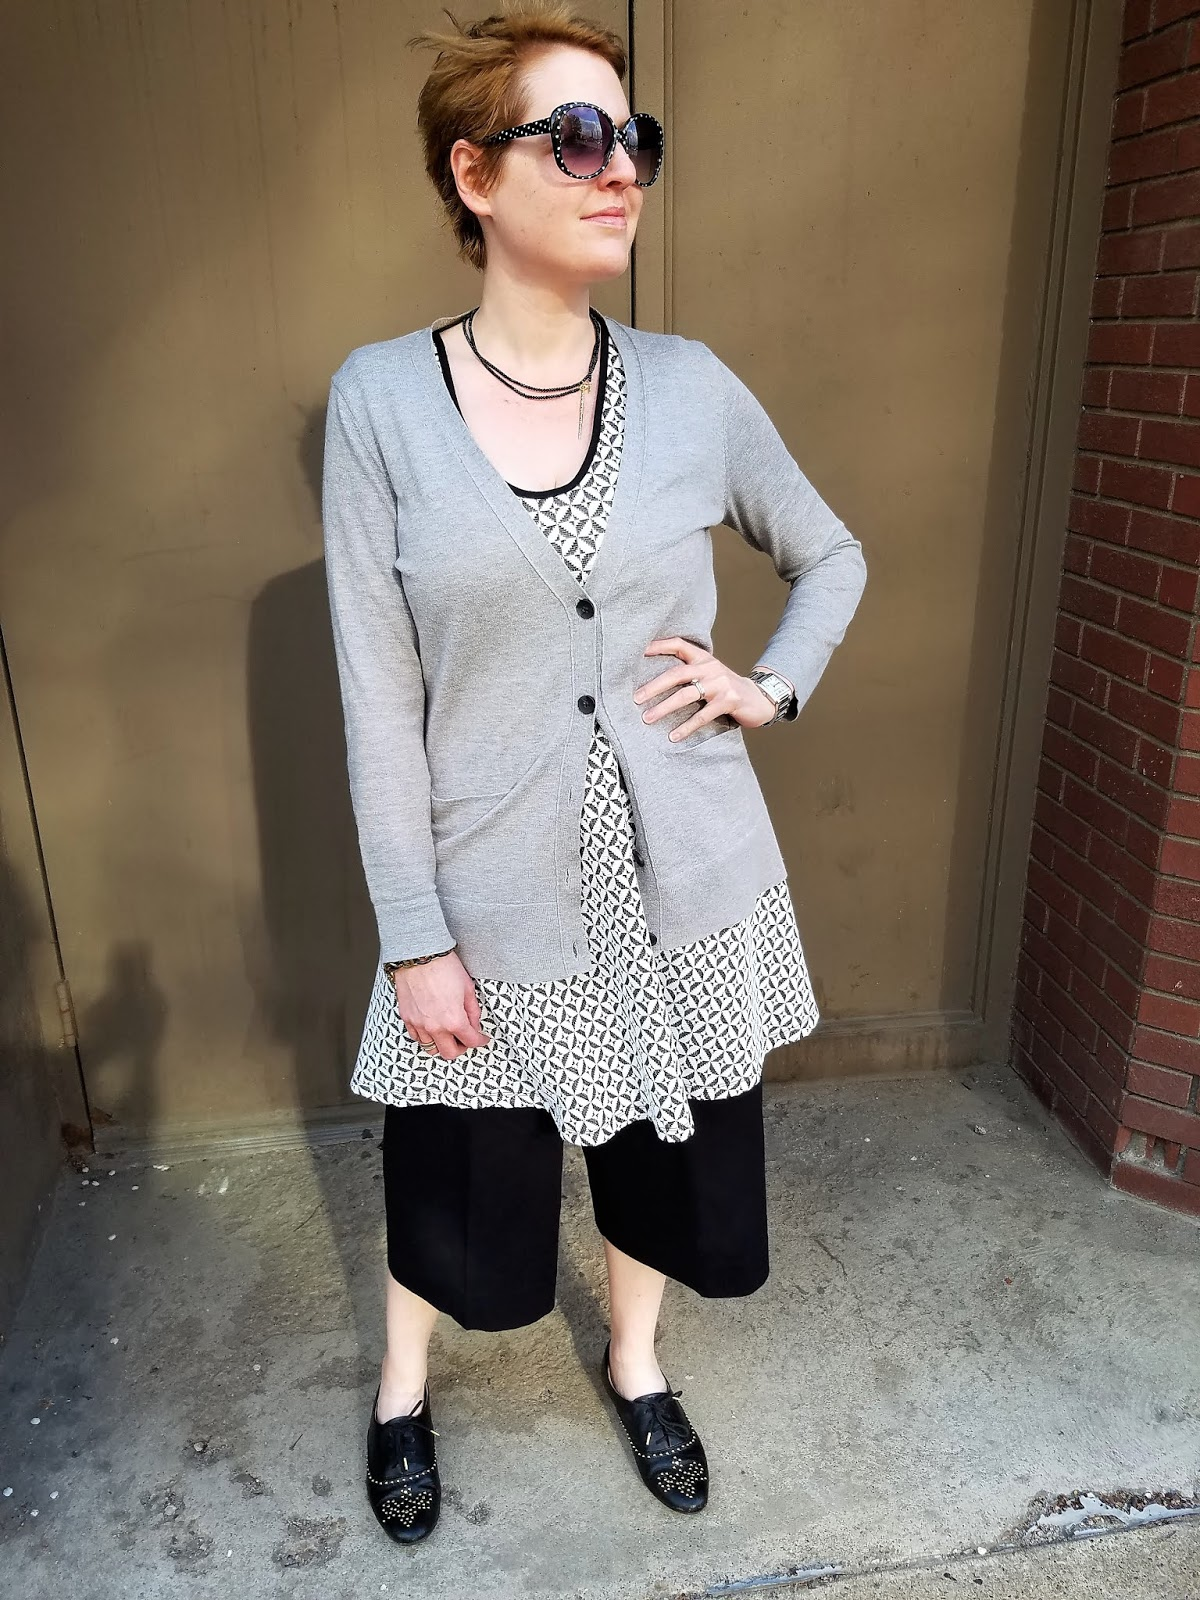 e72b214ac dress/necklace-Via Le Tote, cardi-Old Navy(similar here), culottes-Everlane(similar  here), loafers-Zara(smilar here), sunnies-Target(similar here)